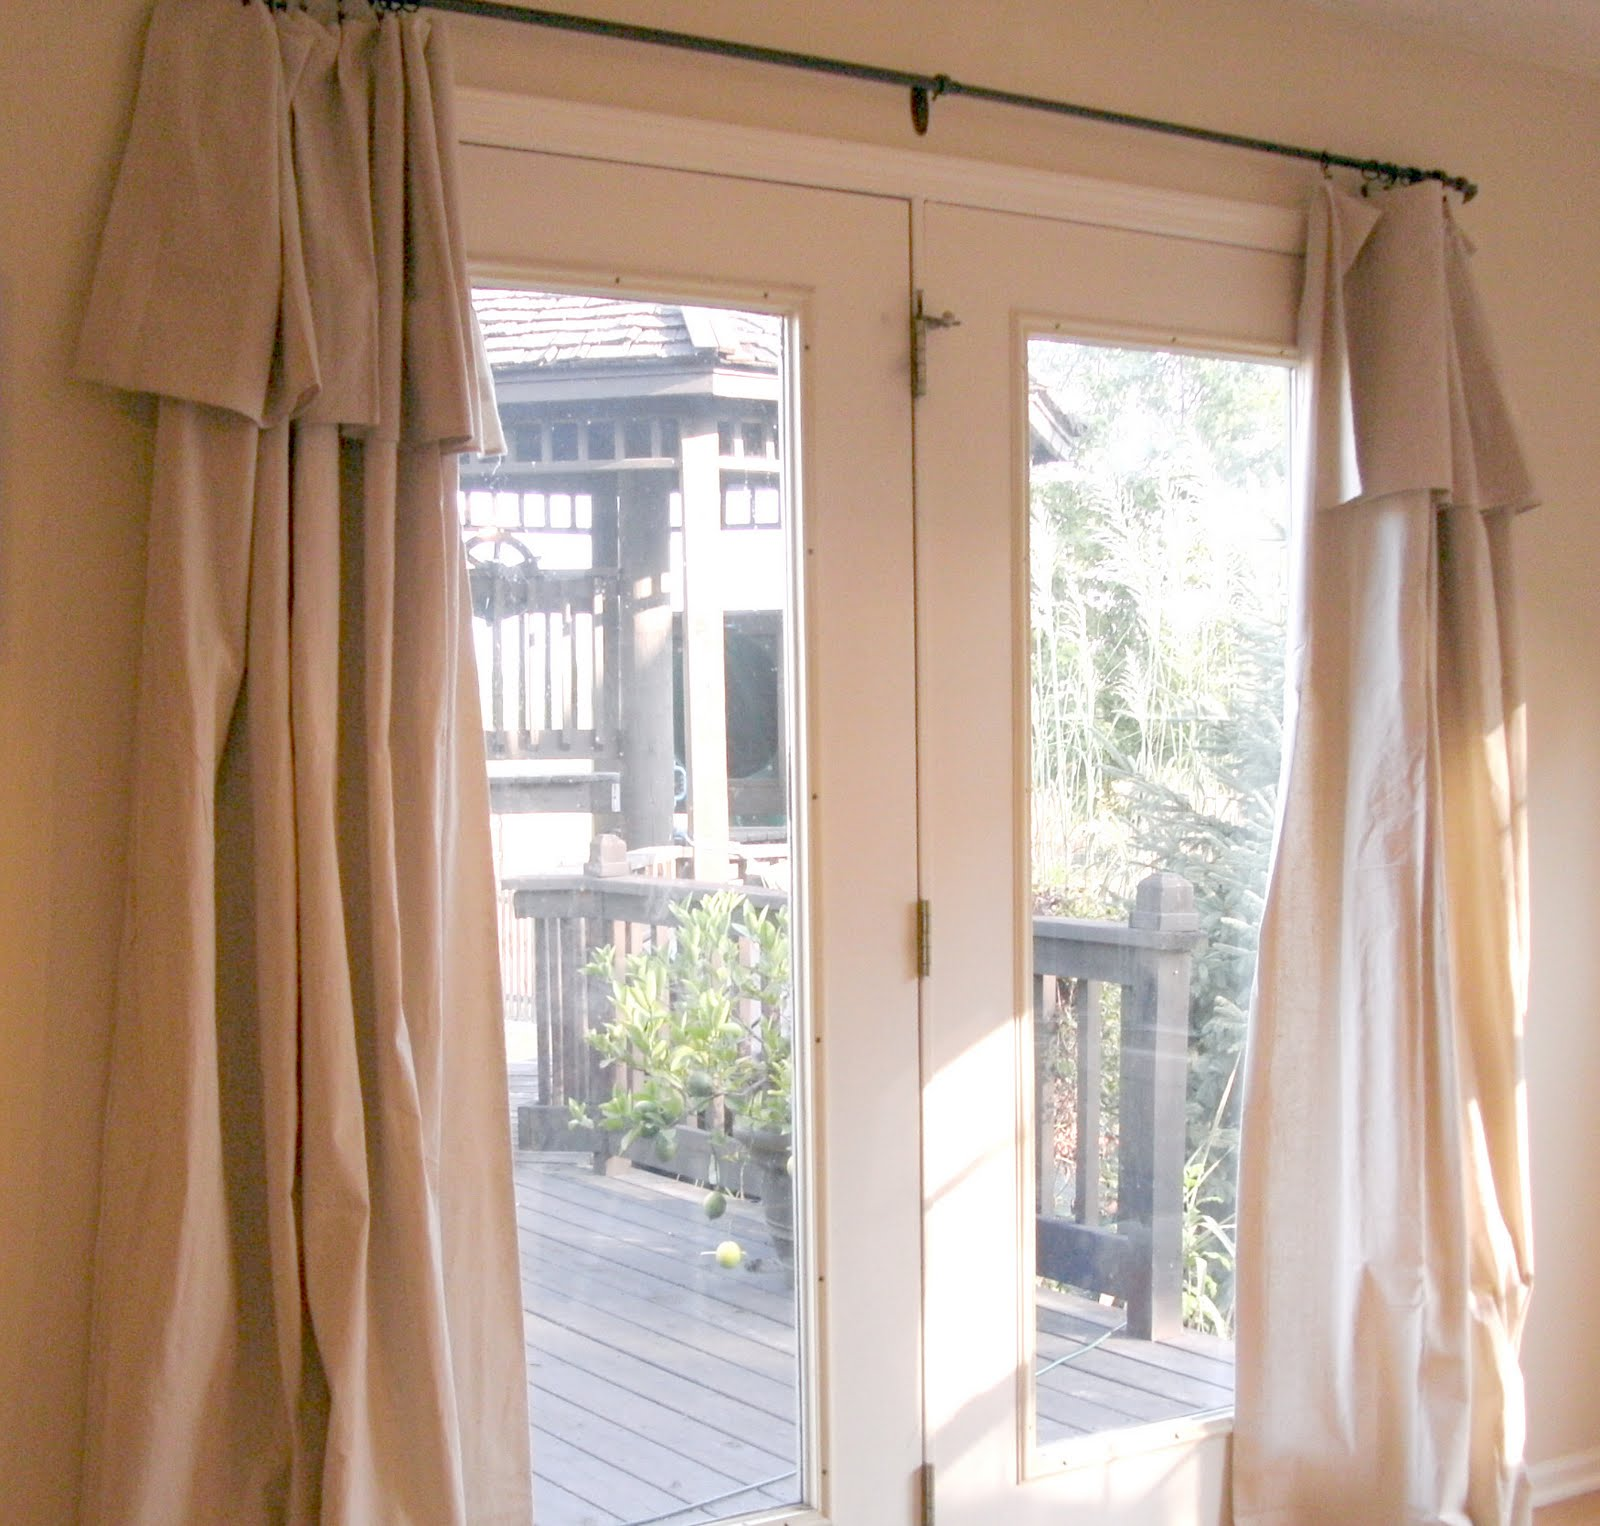 decoration-dazzling-neutral-fabric-double-patio-door-curtains-for-swing-glass-front-door-and-small-railing-bar-in-modern-cheap-budget-door-treatment-ideas-exemplary-patio-door-curtains-decoration-idea